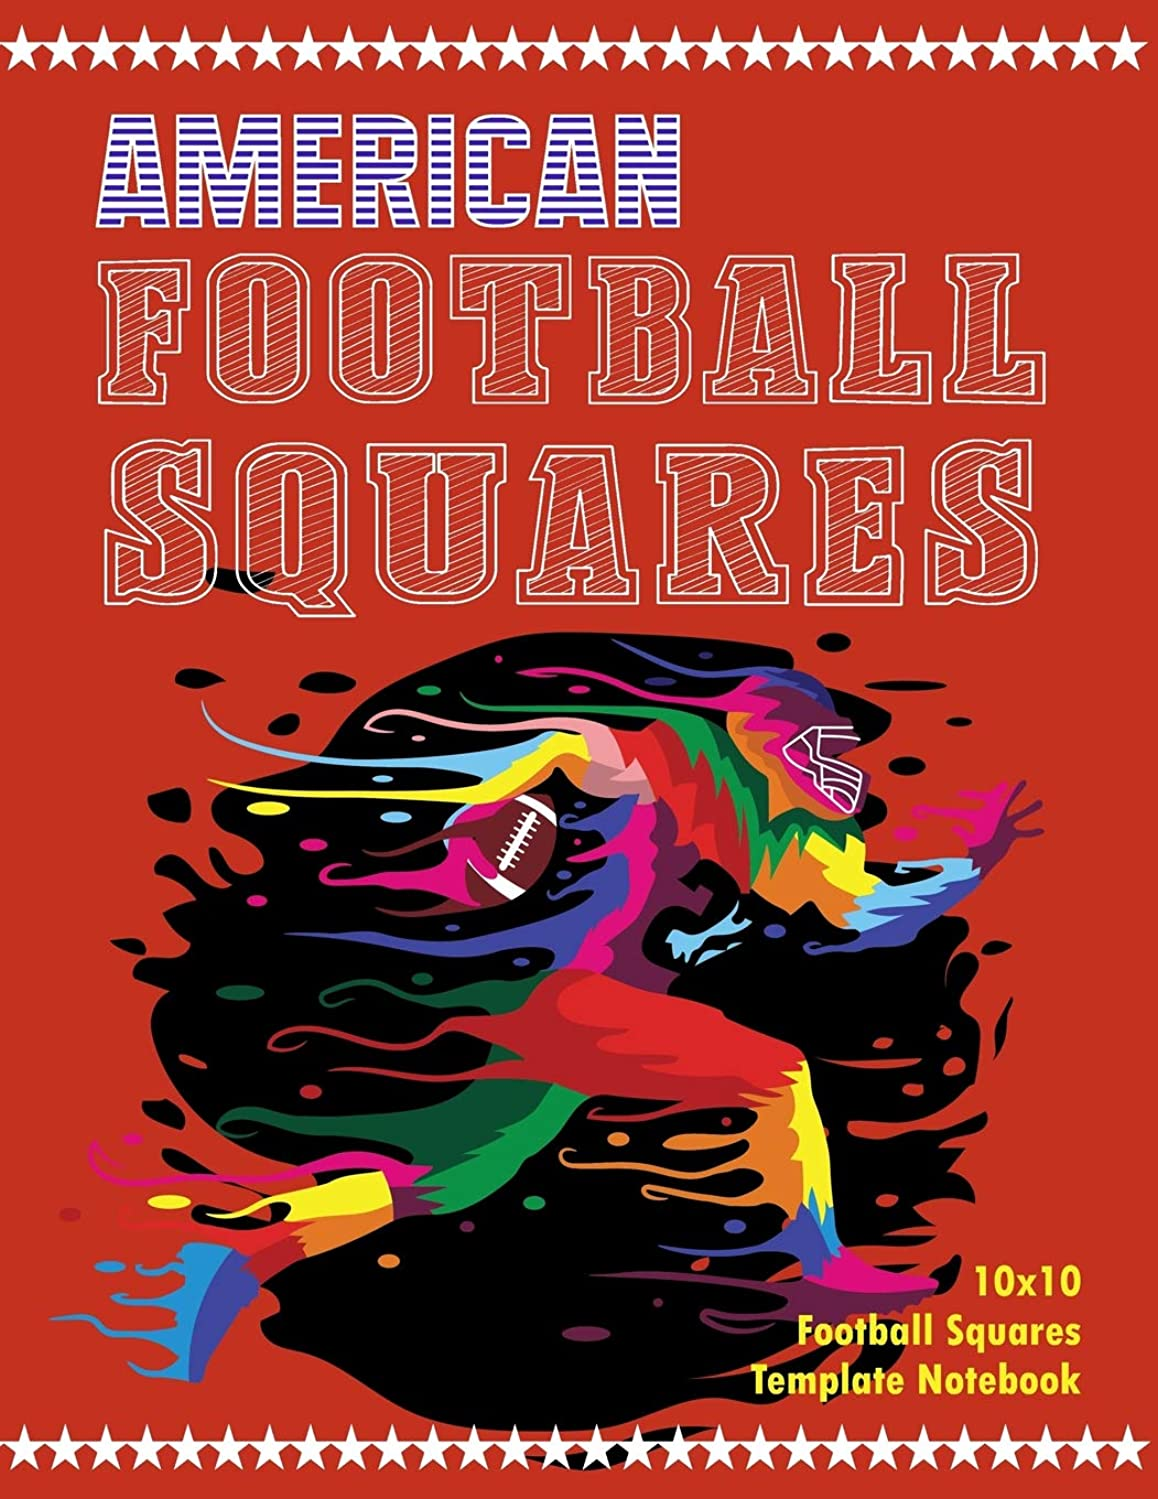 American Football Squares: 10x10 Football Squares With 4 Sets Of Numbers Template Notebook - 50 Squares Sheets Combined With Graph Paper - Large Size 8.5